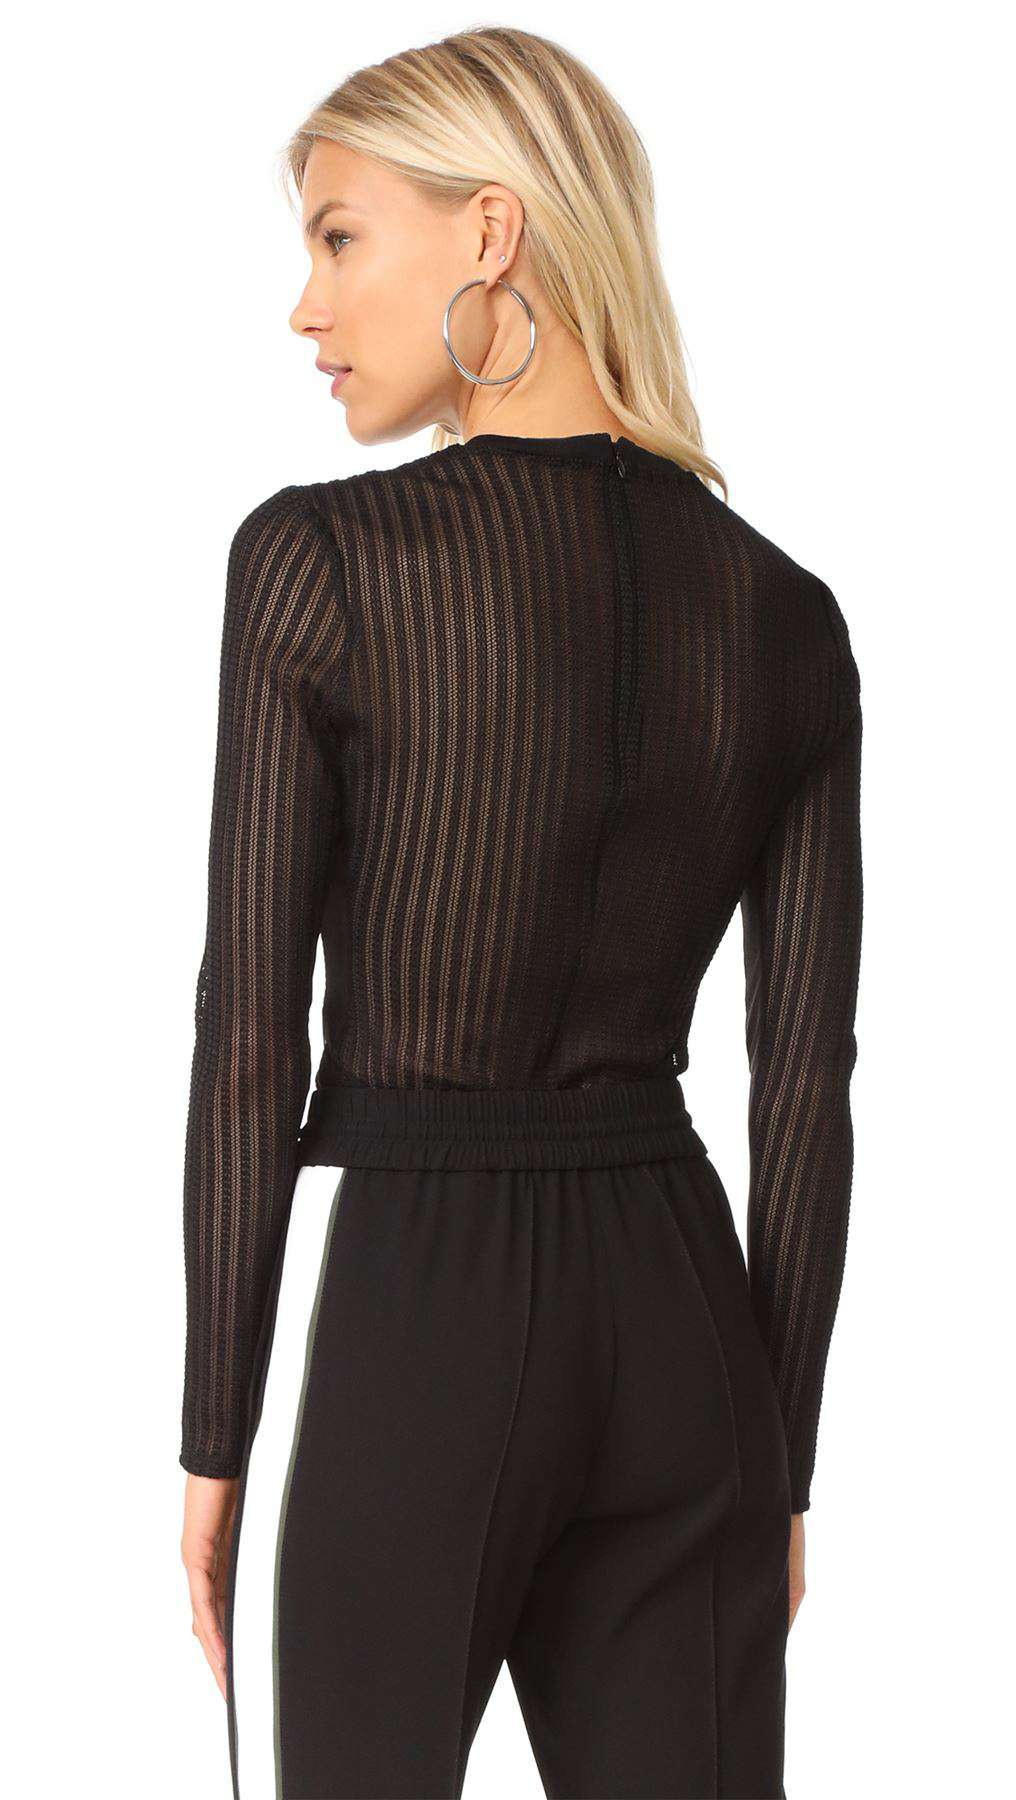 CINQ A SEPT PAIGE STRIPED MESH BODYSUIT SMALL